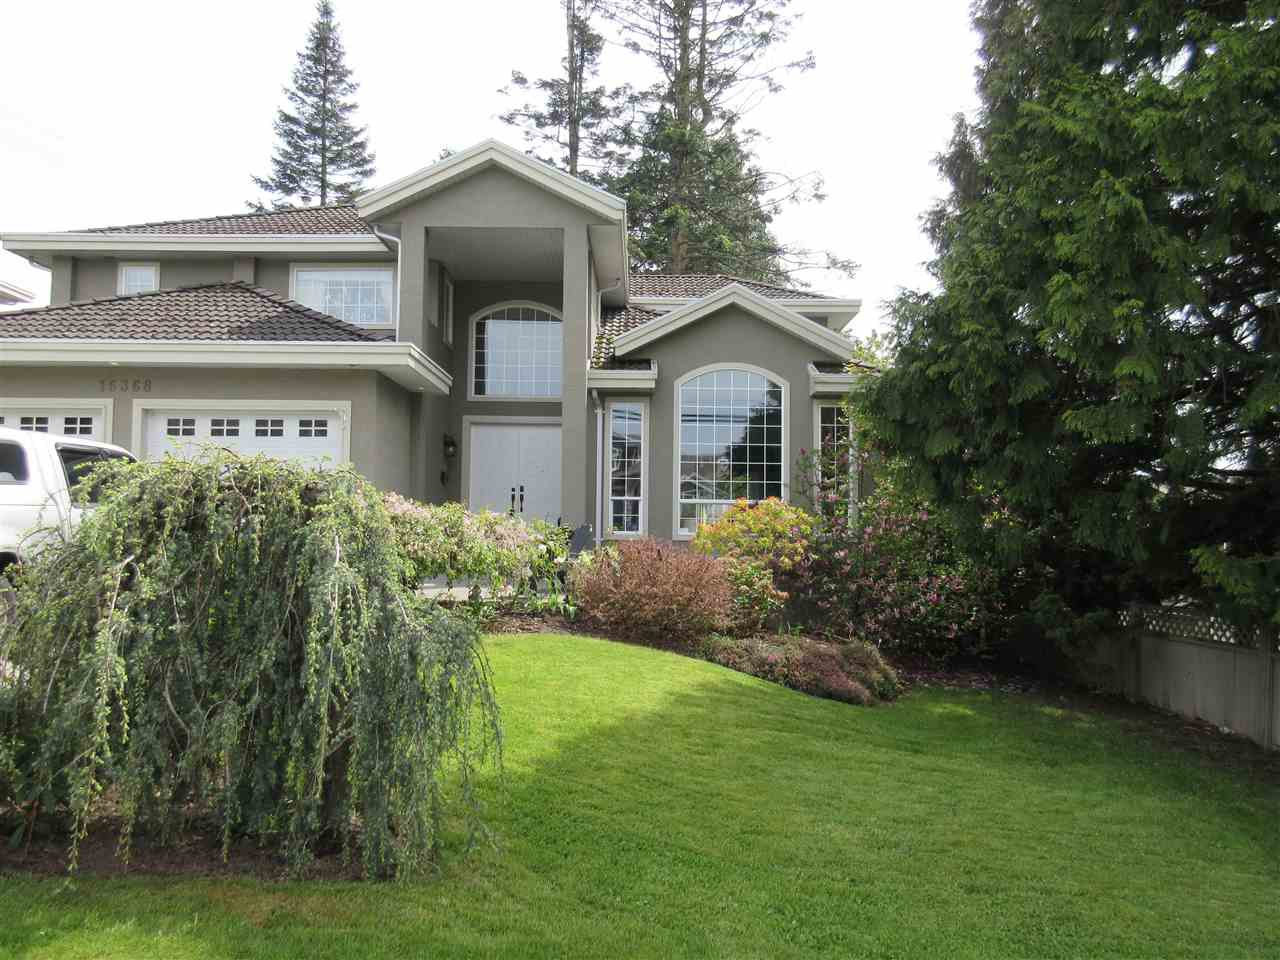 Main Photo: 16368 10 Avenue in Surrey: King George Corridor House for sale (South Surrey White Rock)  : MLS®# R2164325